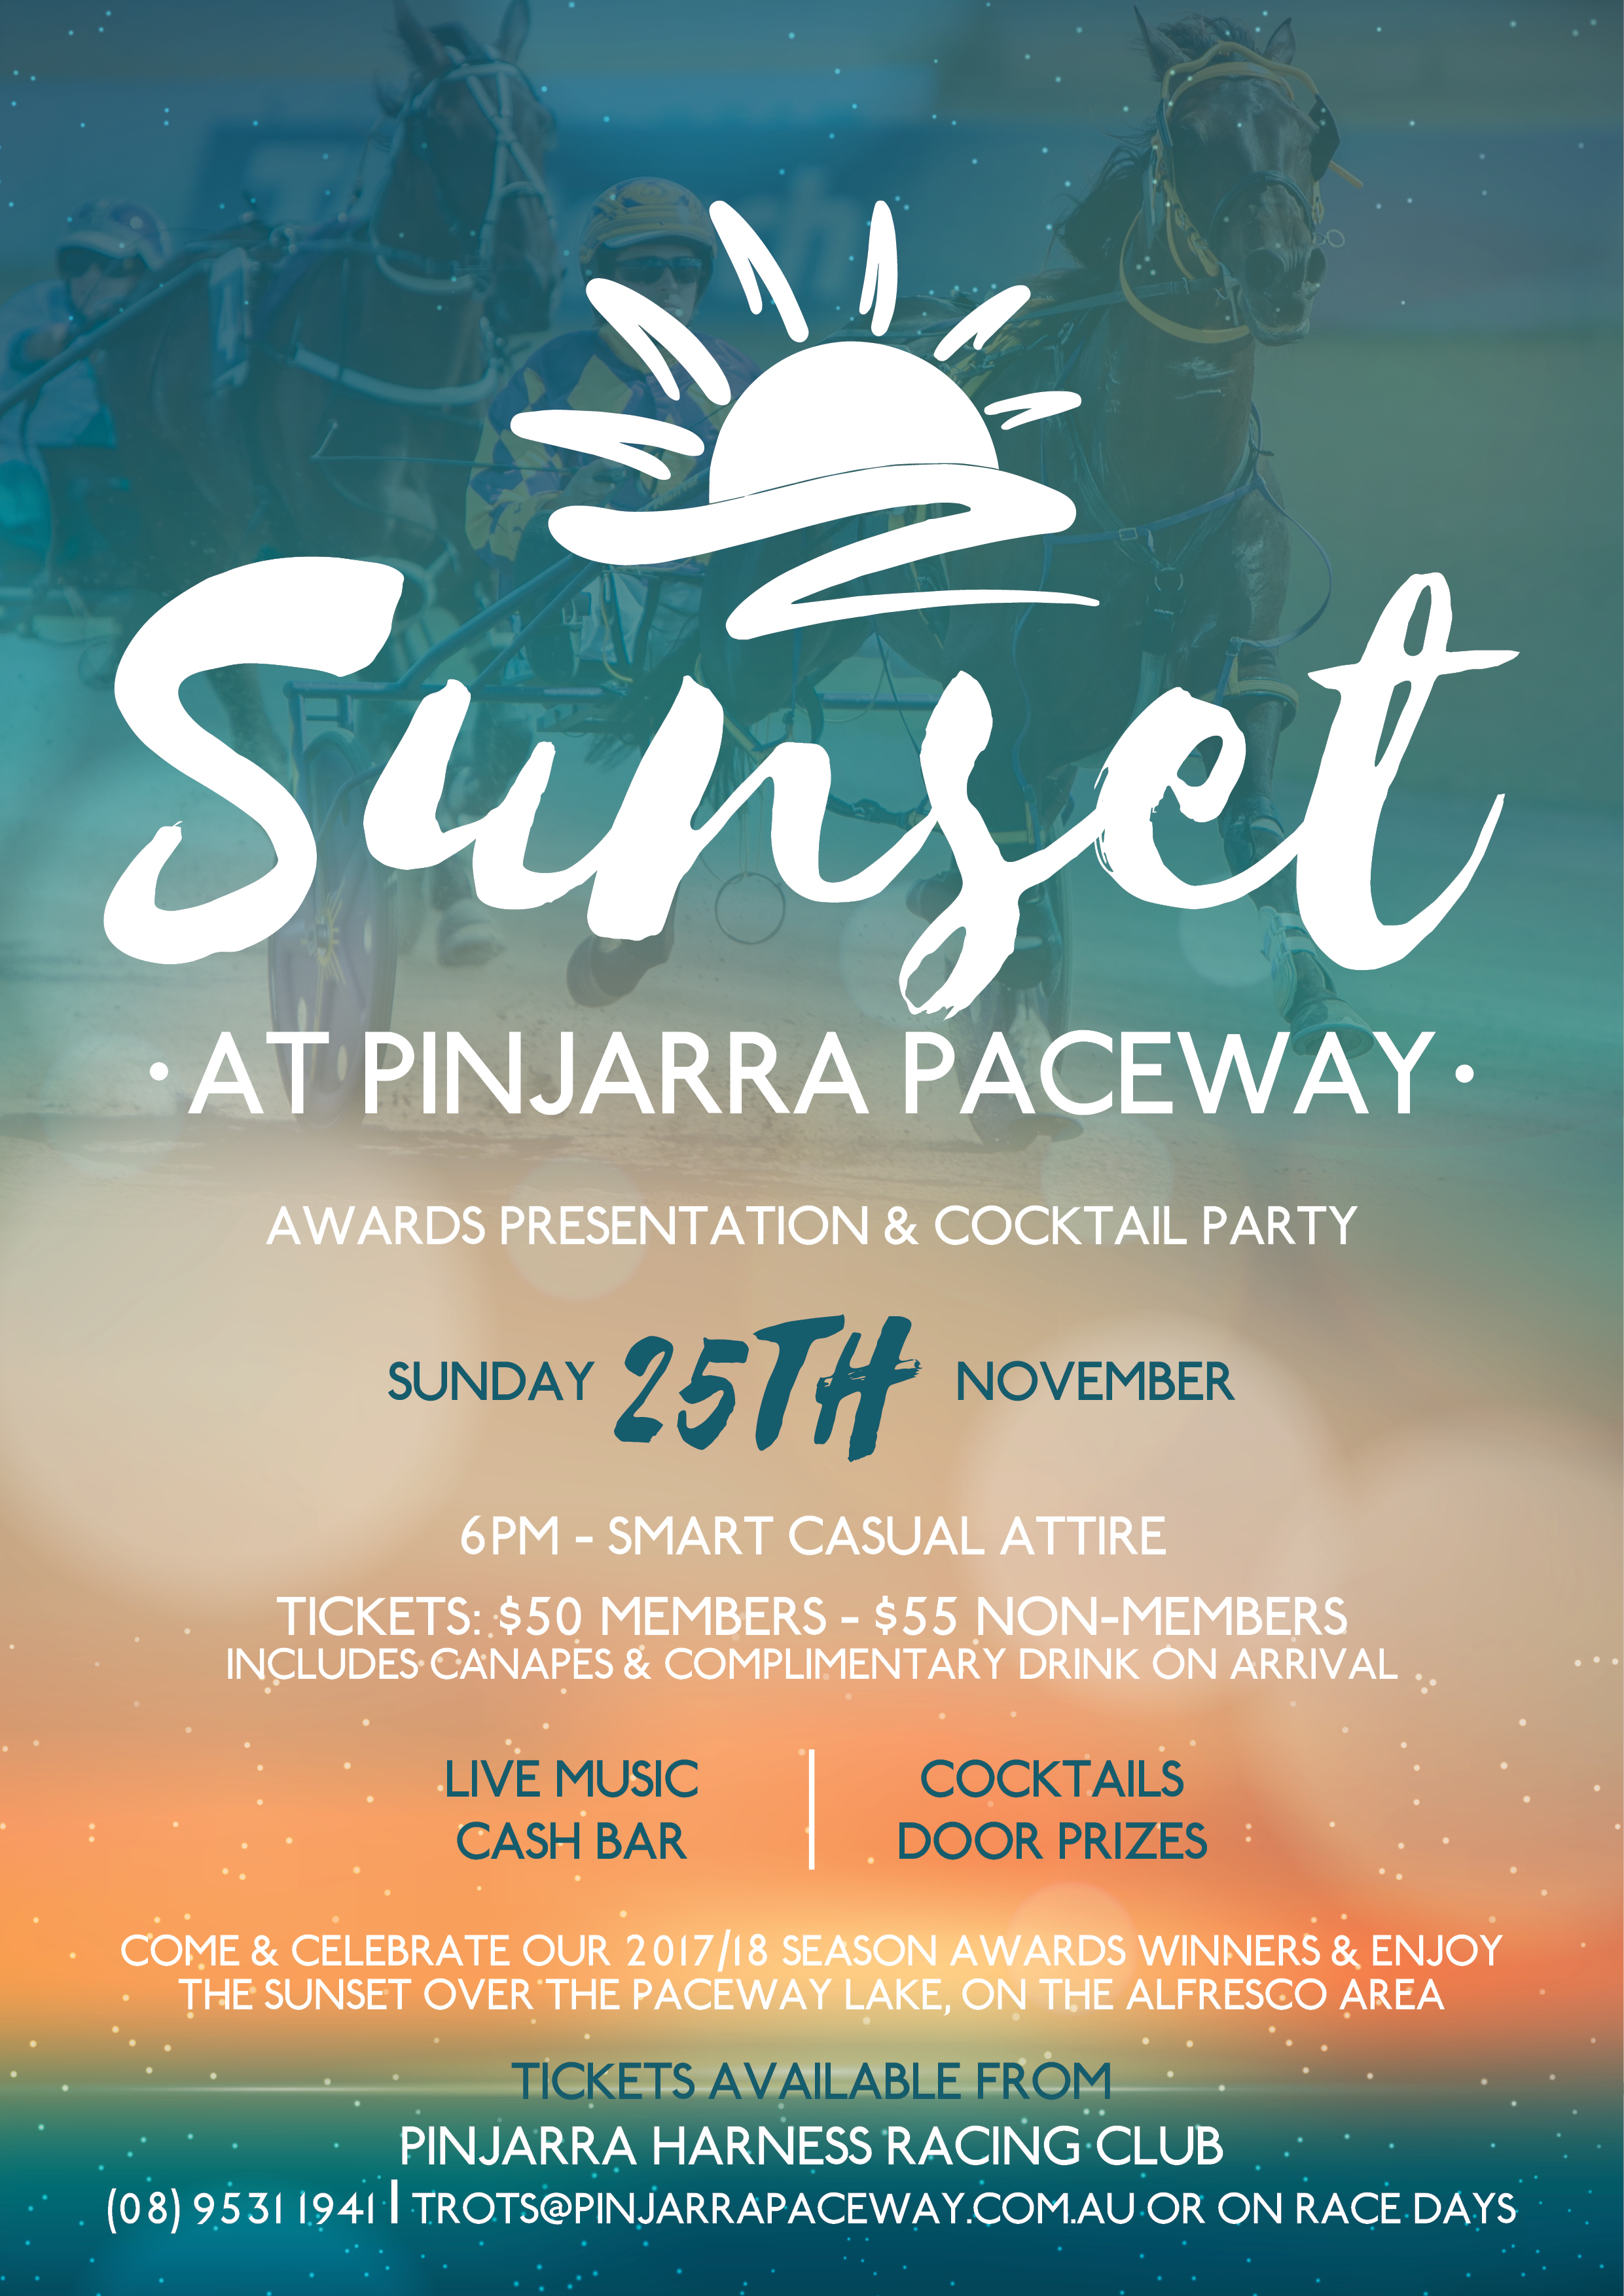 awards night save the date pinjarra paceway